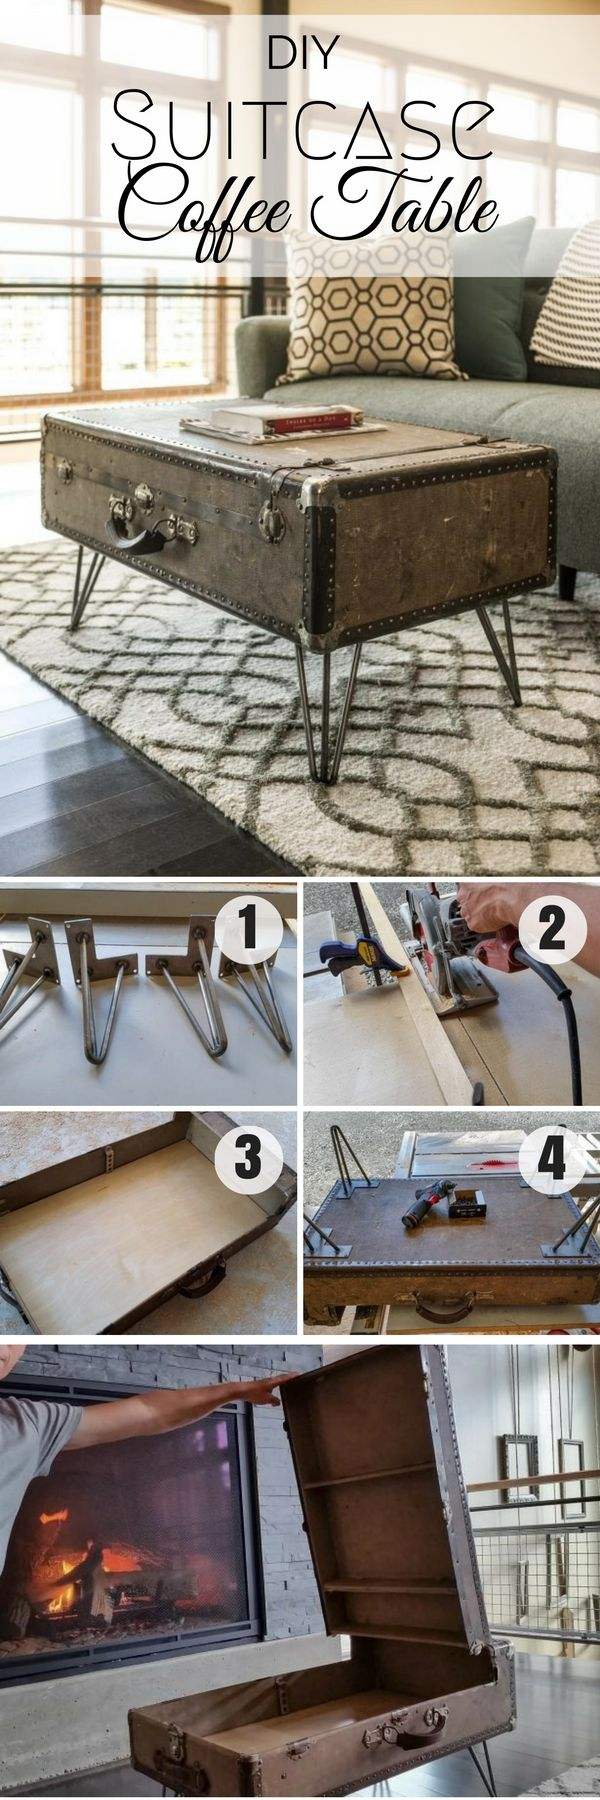 Best Coffee Tables Images On Pinterest Furniture DIY And - Charming vintage diy sawhorse coffee table